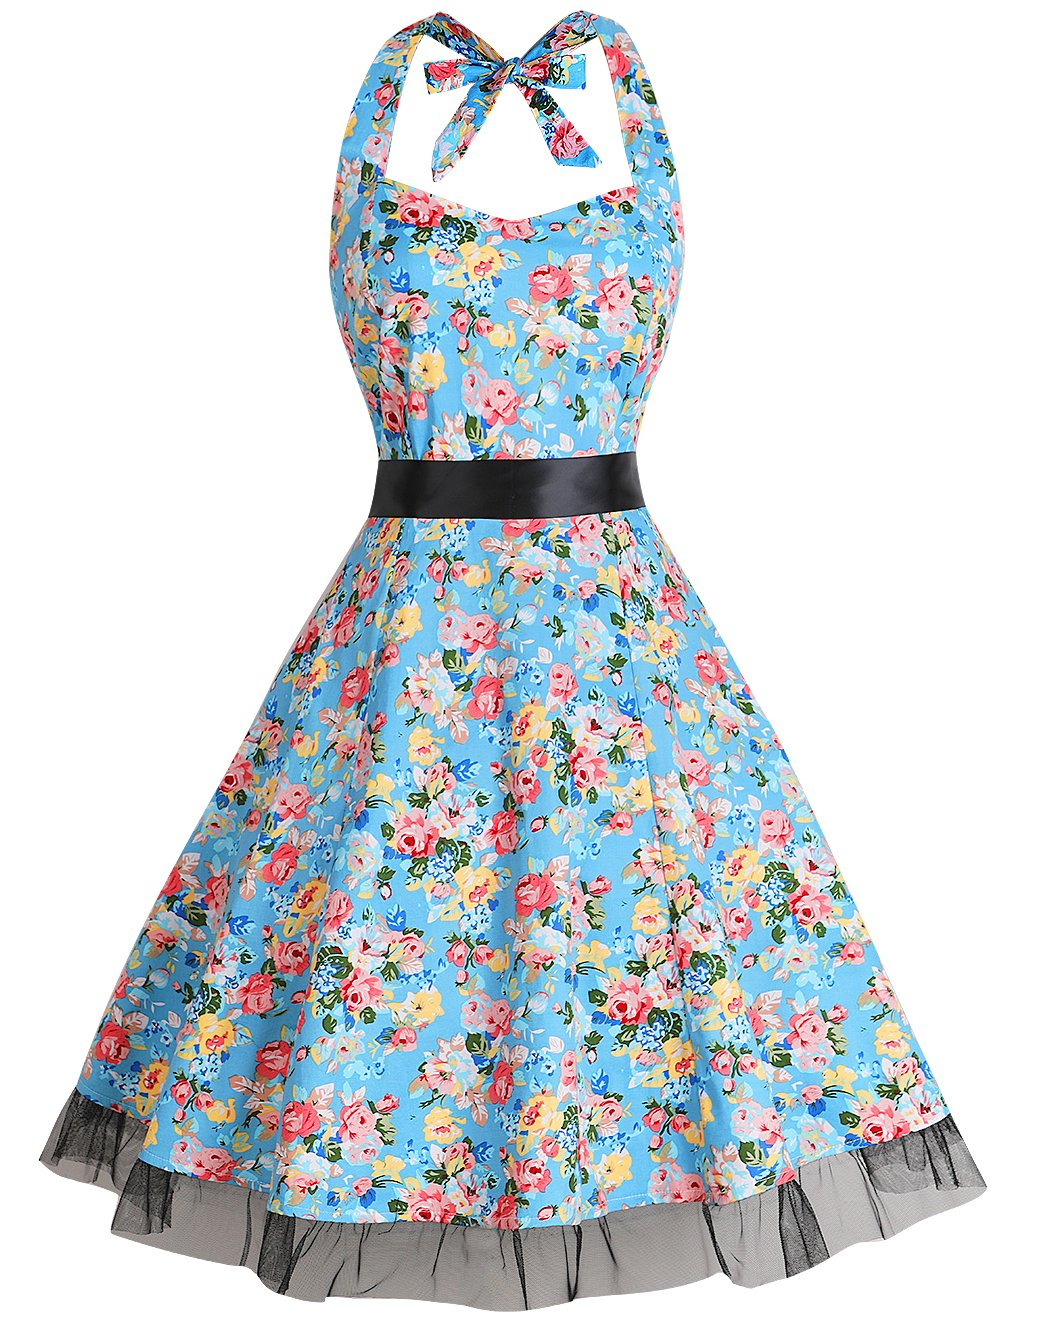 Available at Amazon: oten Women's Vintage Polka Dot Halter Dress 1950s Floral Sping Retro Rockabilly Cocktail Swing Tea Dresses